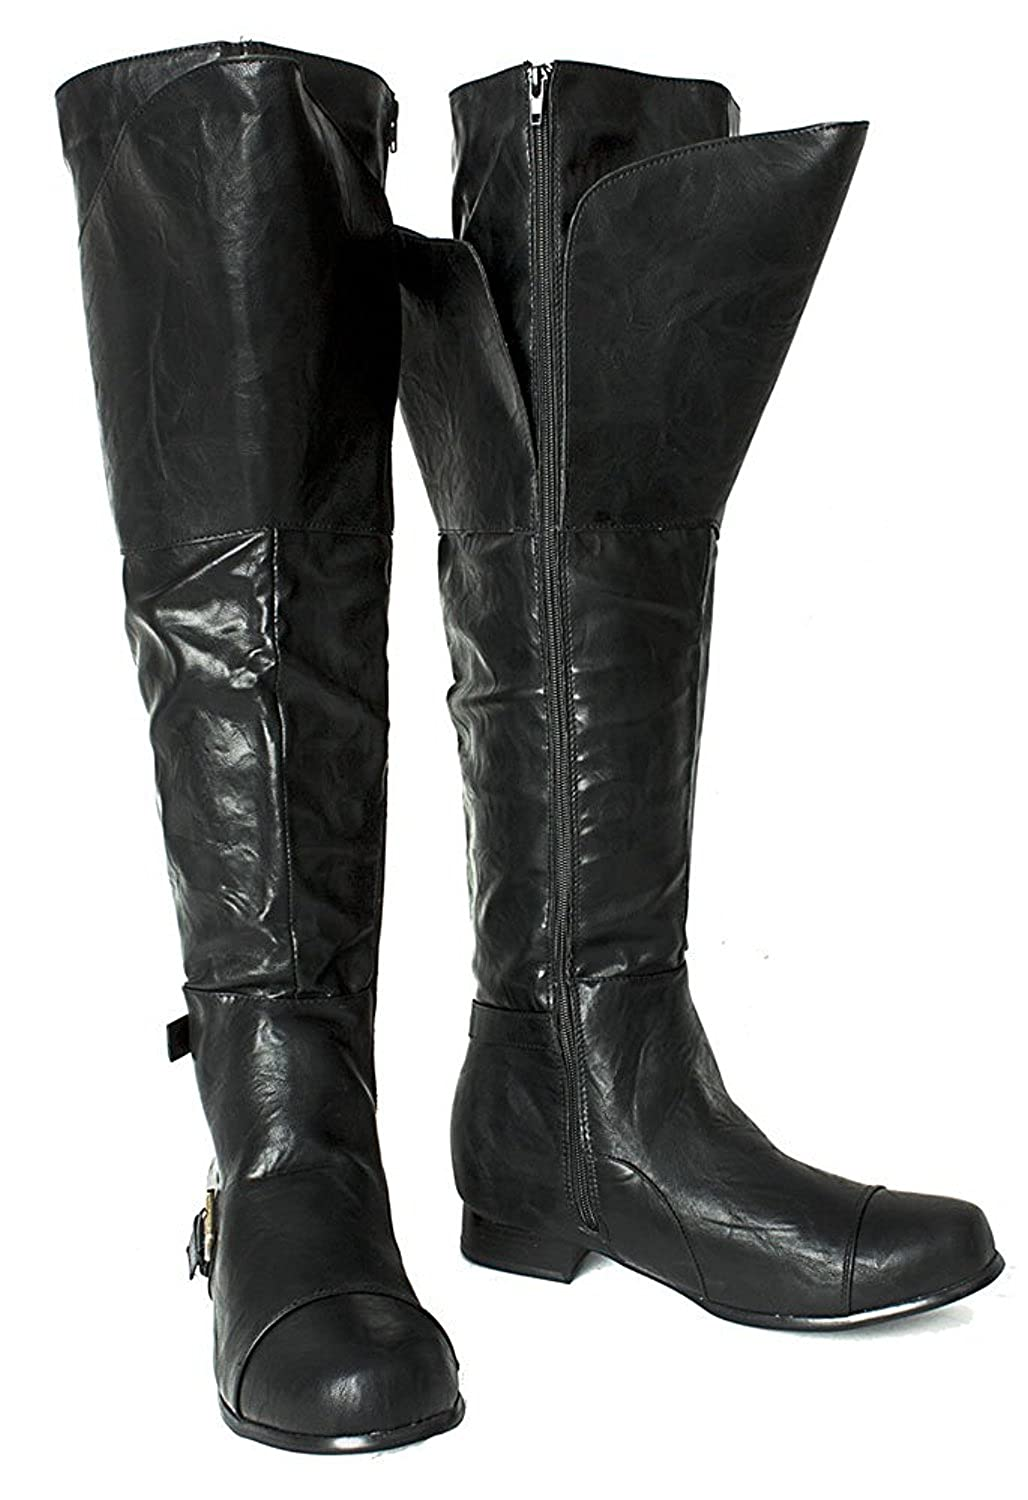 Deluxe Adult Costumes - Men's black Aassassin's Creed, Renaissance, Medieval, Final Fantasy, or Steampunk cosplay Halloween costume tall faux leather boots.